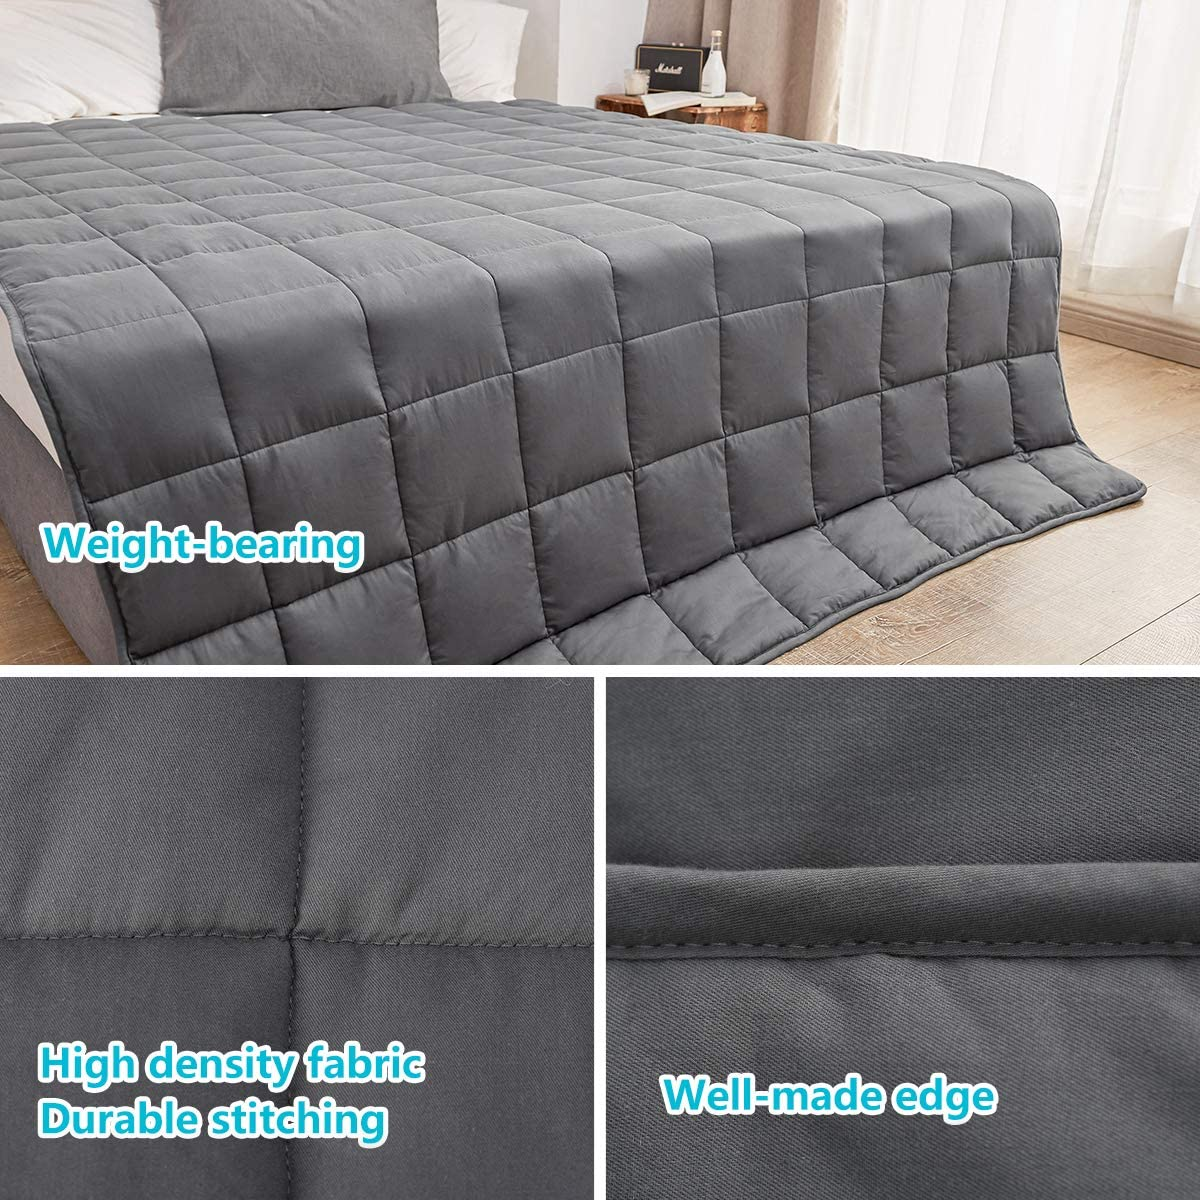 VANZAVANZU Soft Weighted Blanket for Adults 20 lbs for 180-220 lbs Queen Size Weighted Blanket Breathable Cotton Heavy Blanket with Glass Beads for Better Sleep 60x80